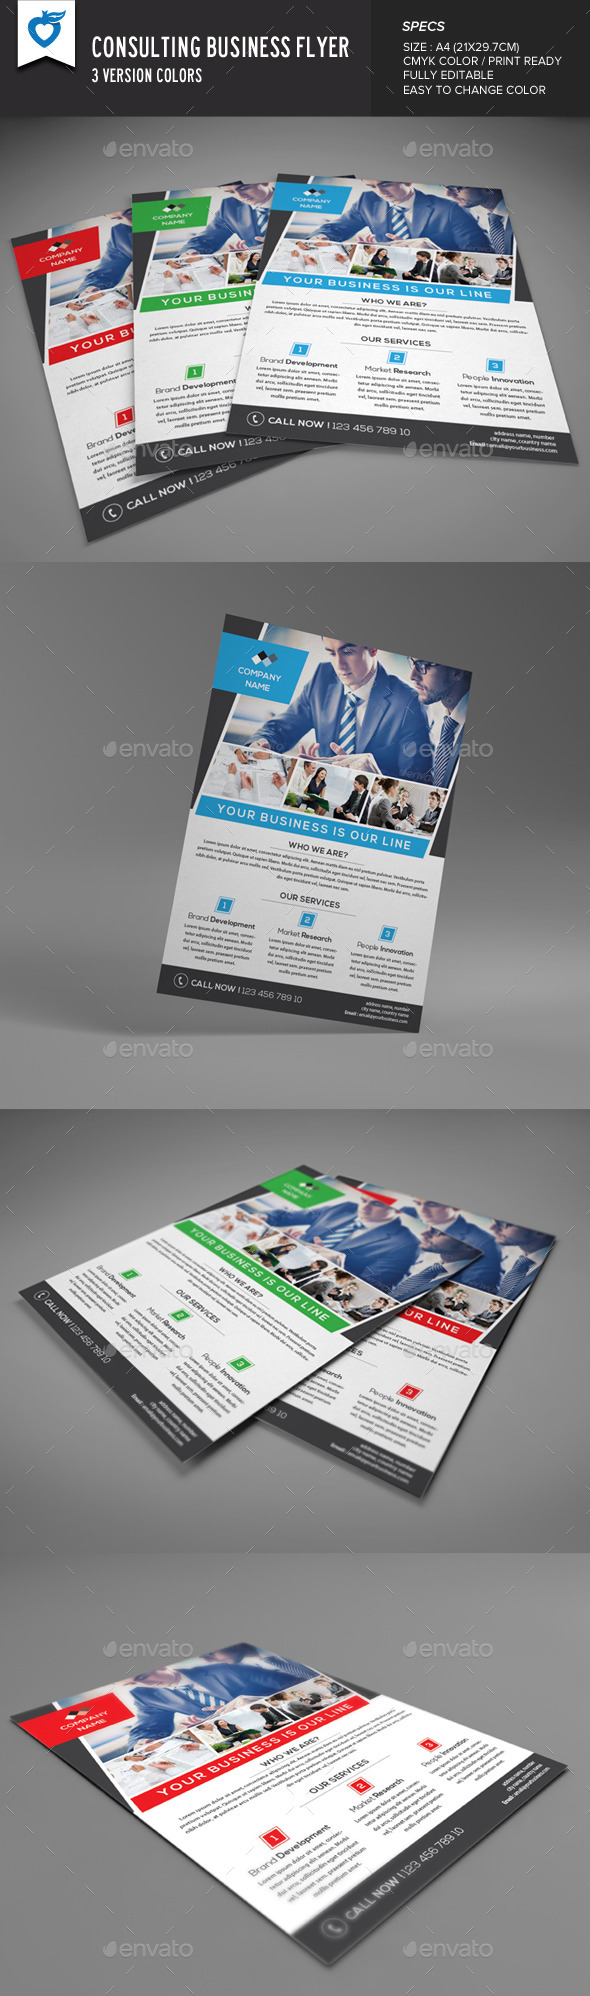 GraphicRiver Consulting Business Flyer 8935470